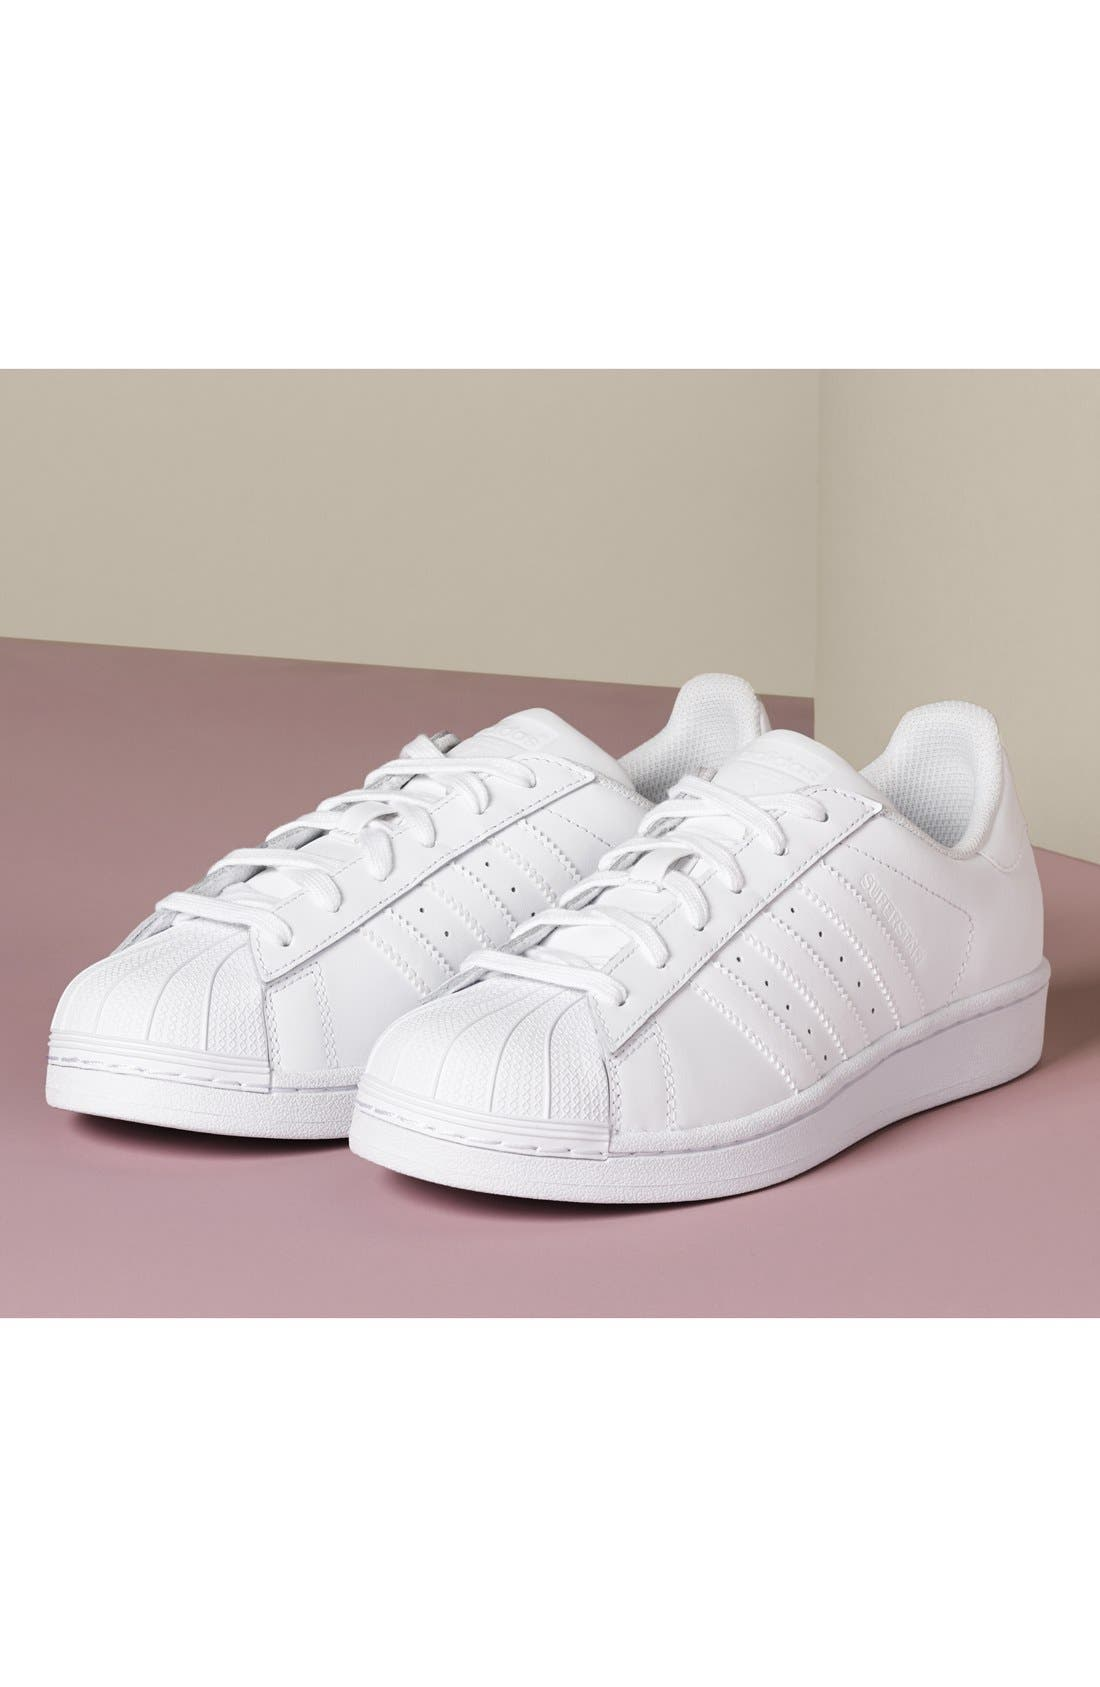 Superstar Sneaker,                             Alternate thumbnail 9, color,                             WHITE/ RED NIGHT/ SILVER